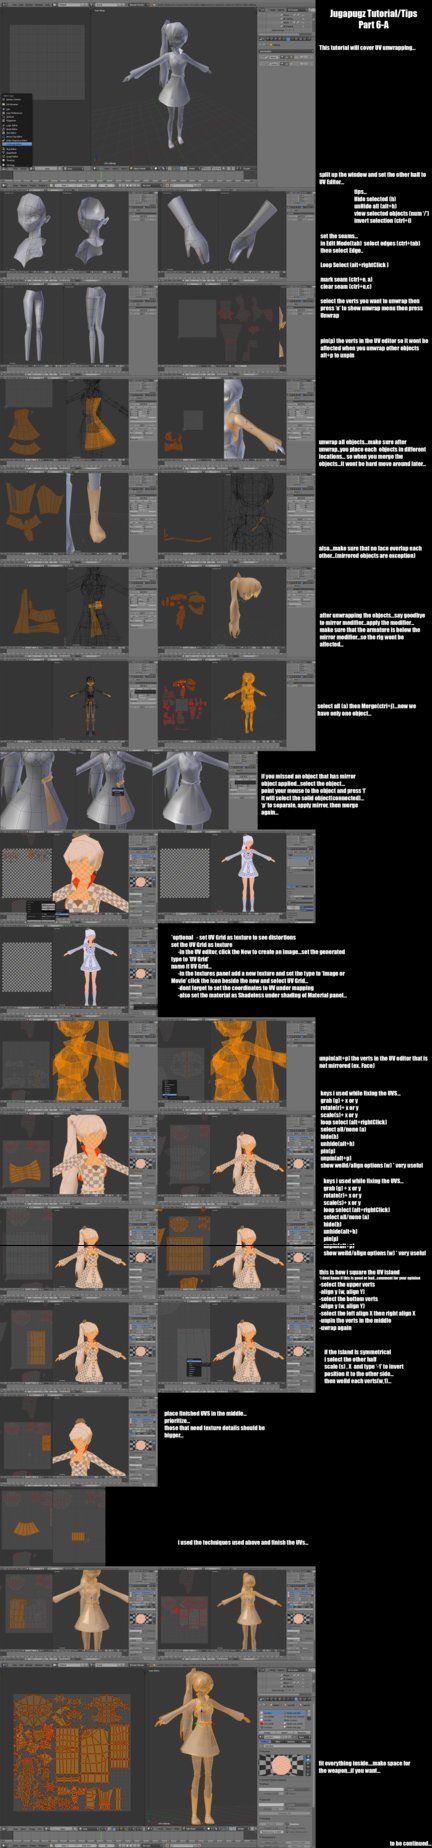 Jugapugz 3d lowpoly character Tutorial/Tip Part 6A by jugapugz